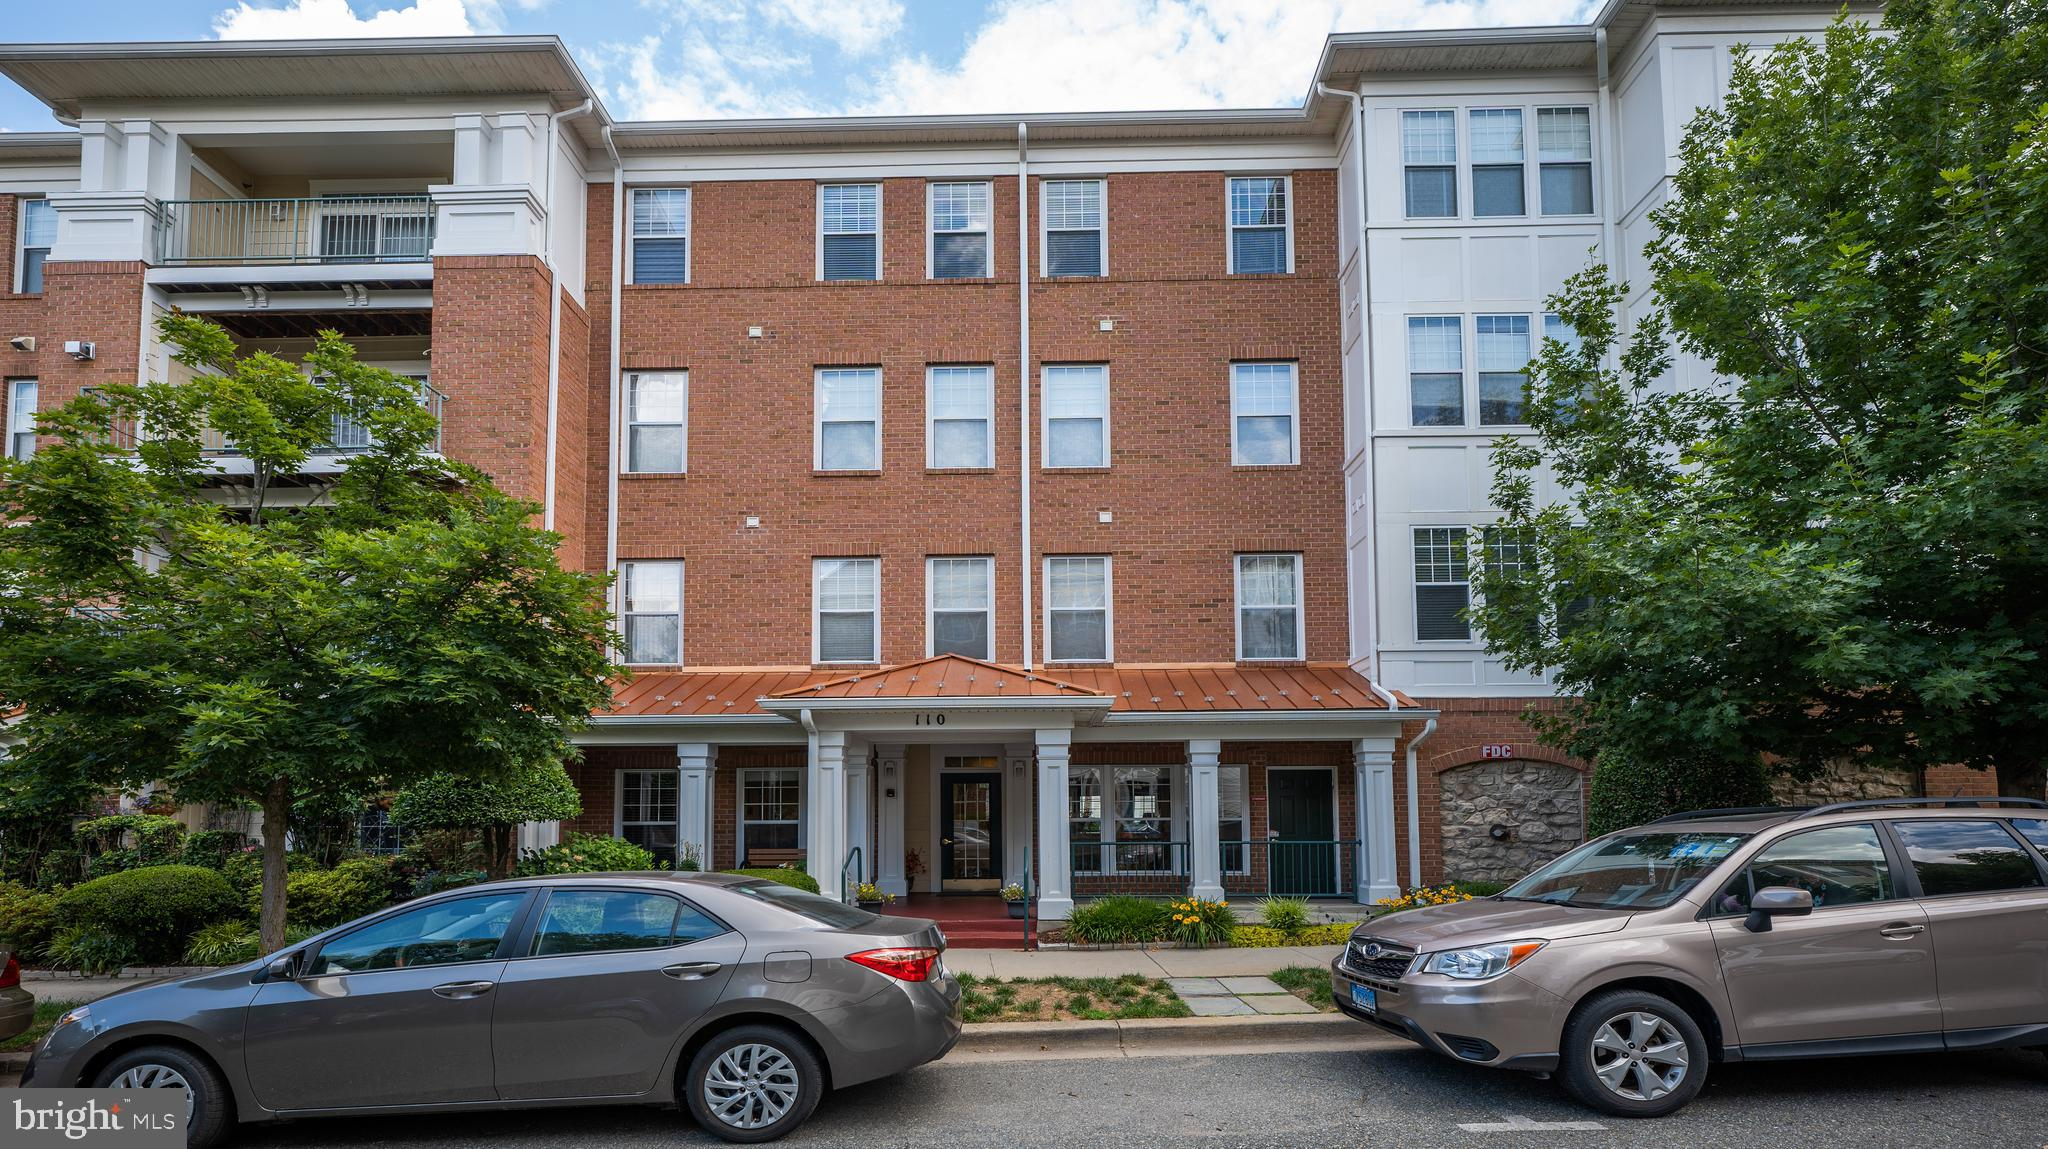 Welcome to this sun filled two bed, two bath corner unit condo with elevator access located in the K